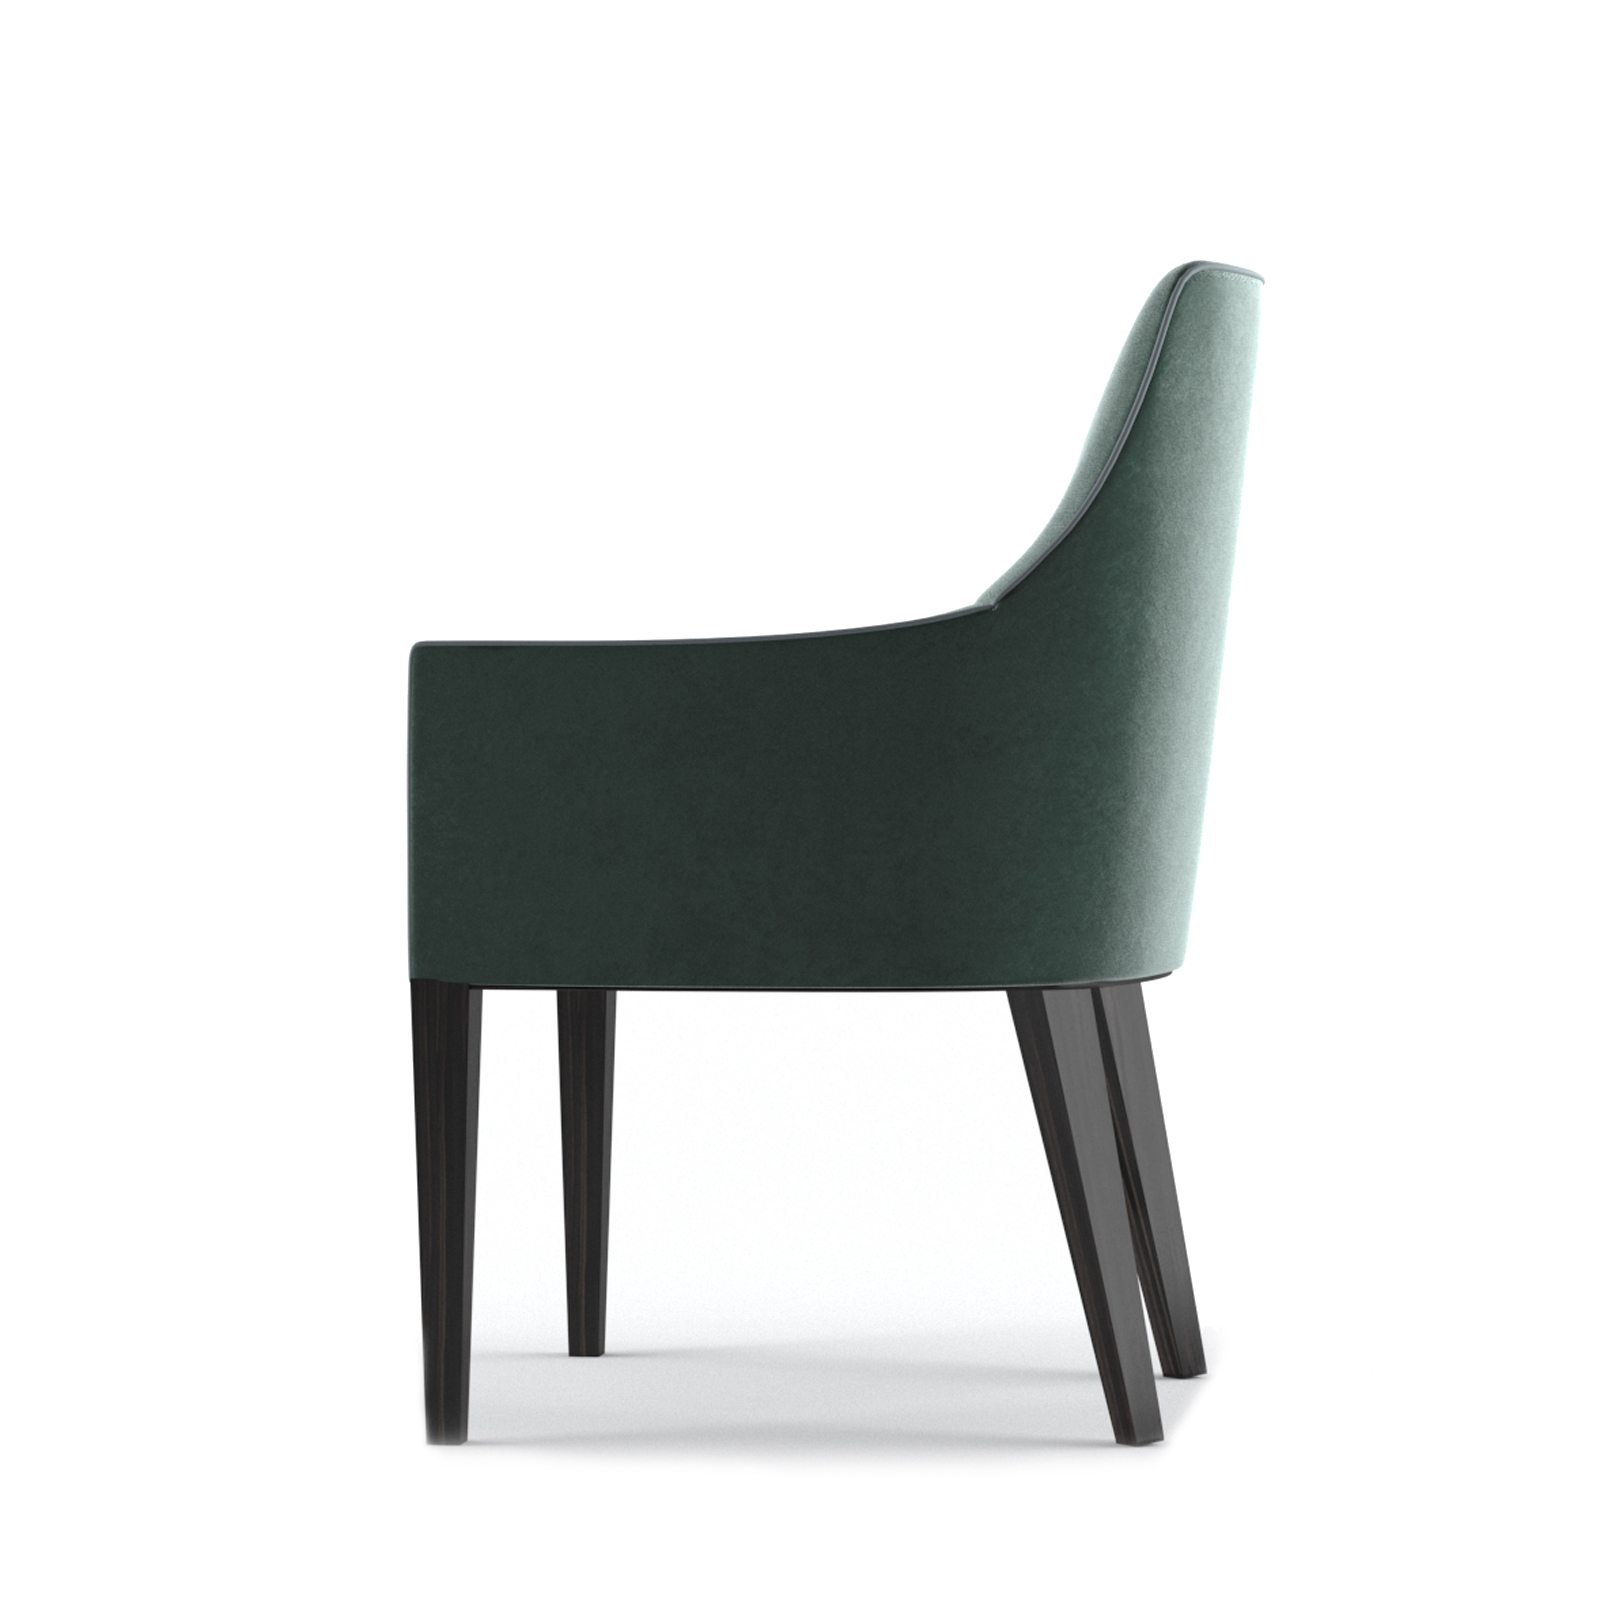 Balfour-Carver-Chair-by-Bonham-&-Bonham-05